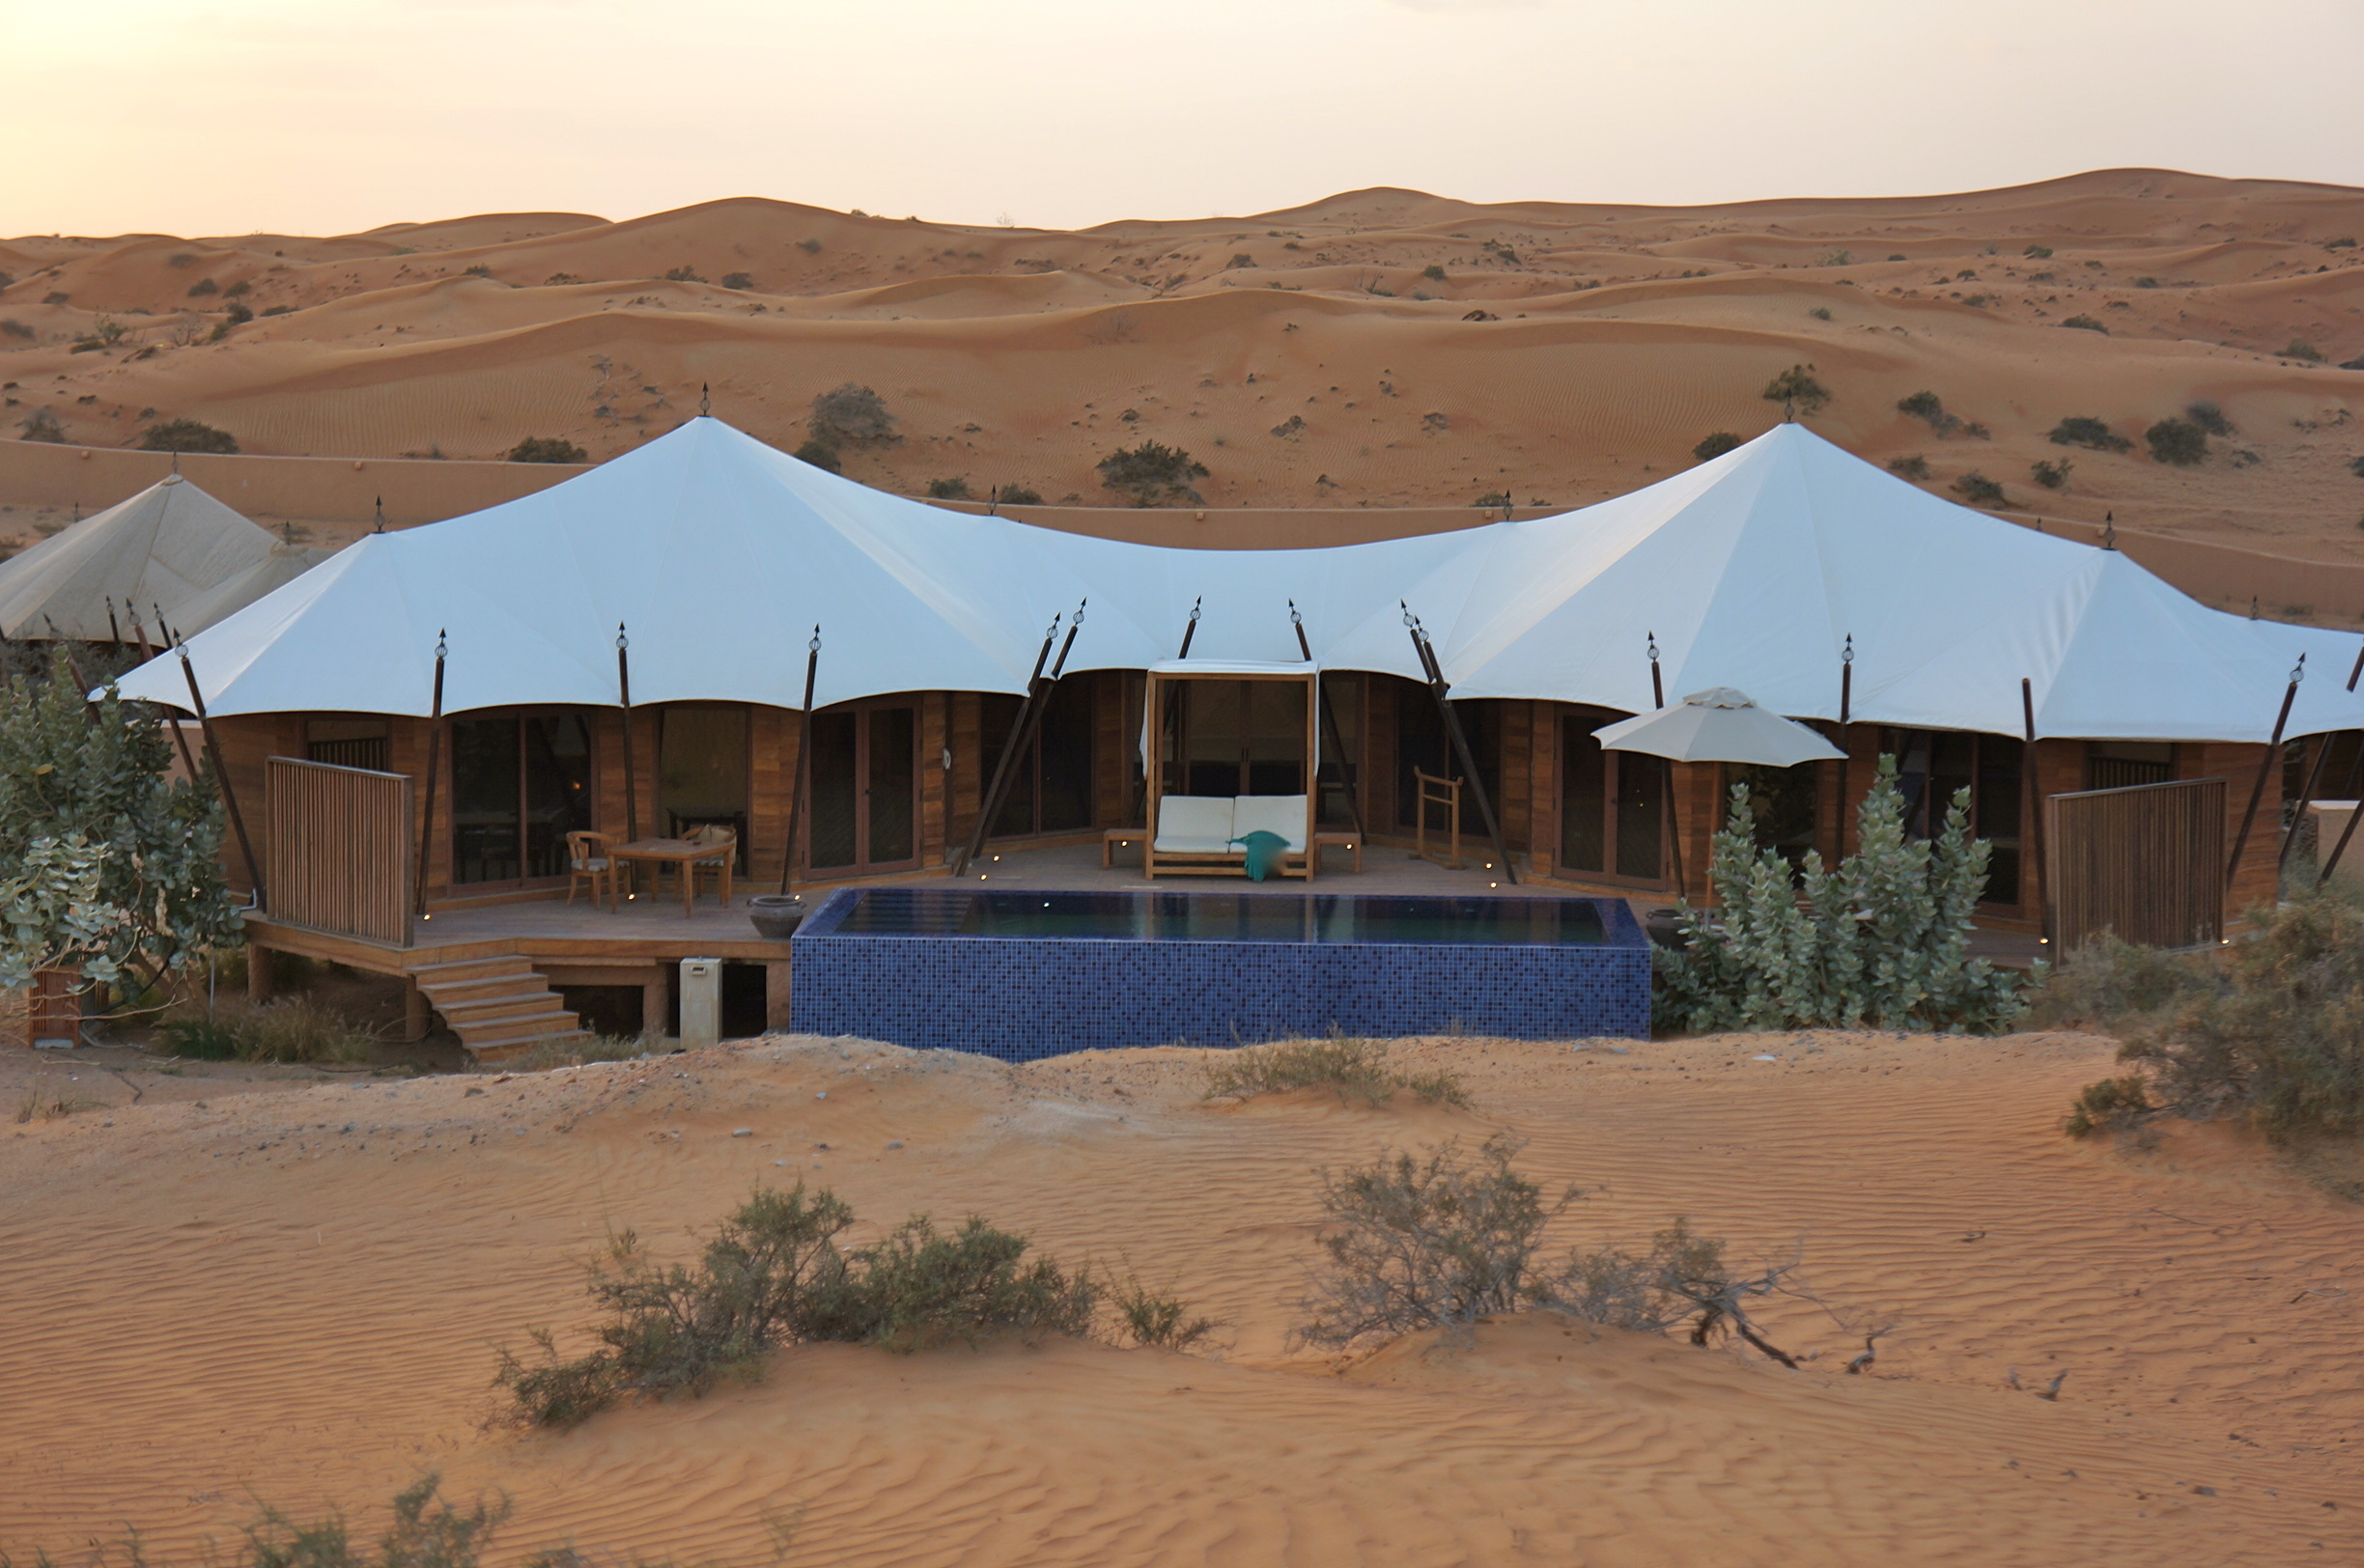 Our villa appears like a mirage against the vast desert backdrop.